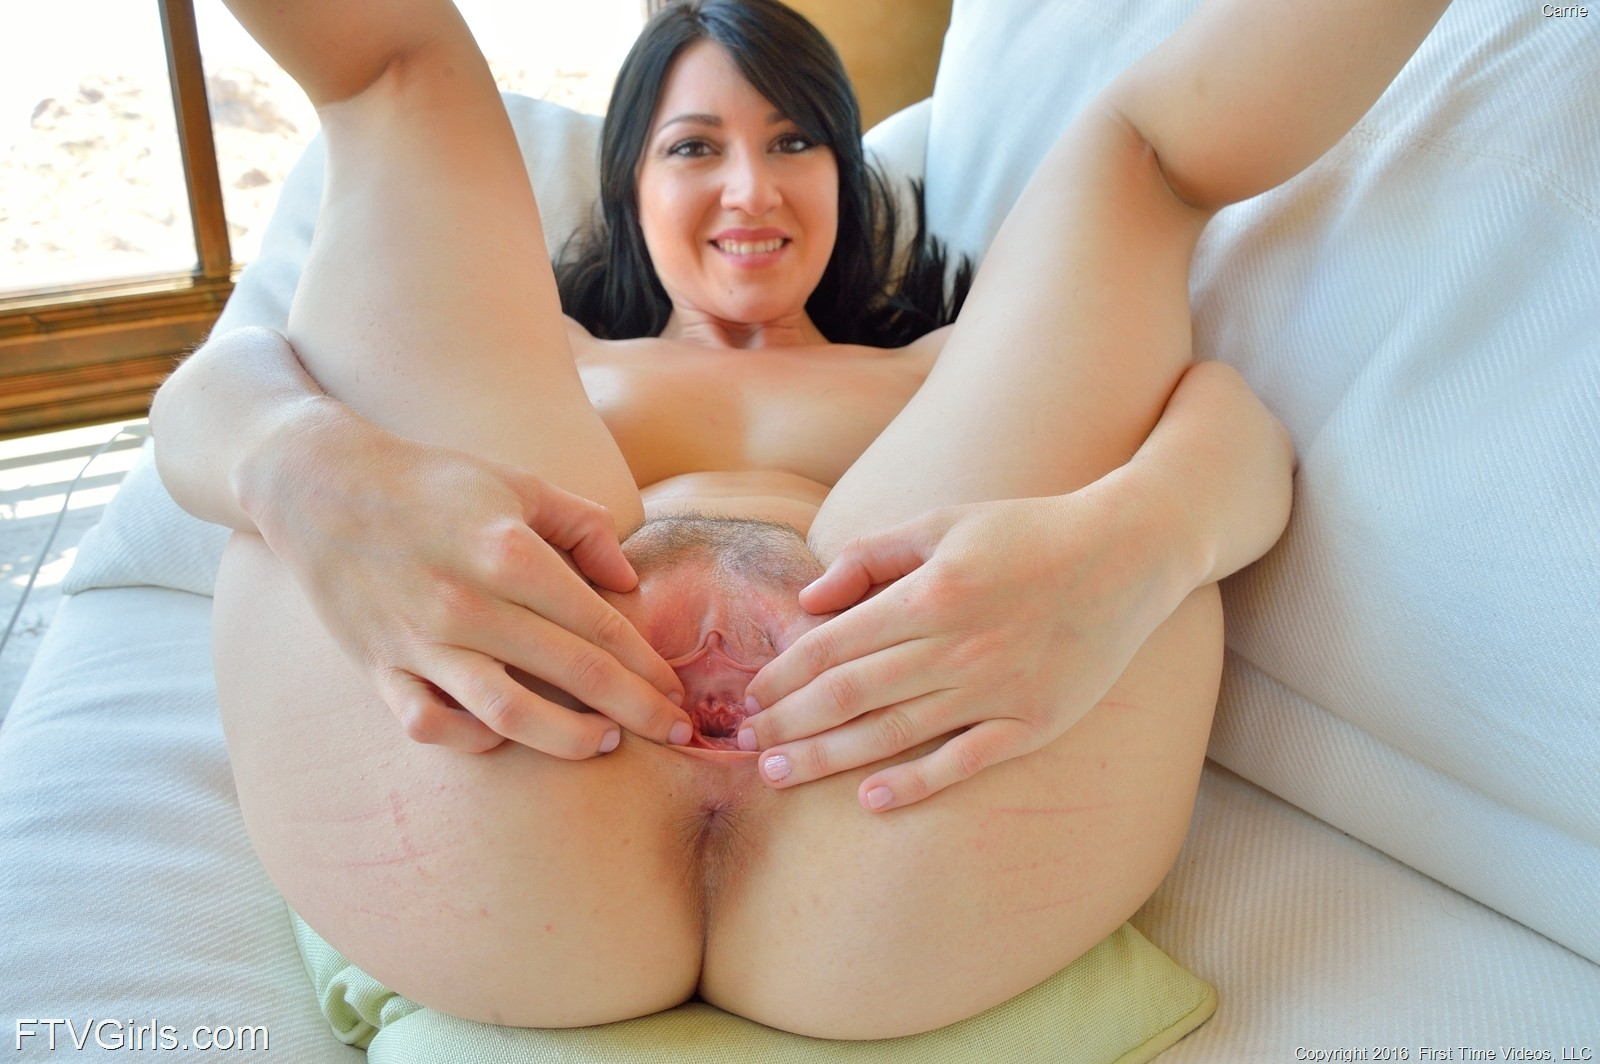 pussy-casting-carries-pussy-free-group-sex